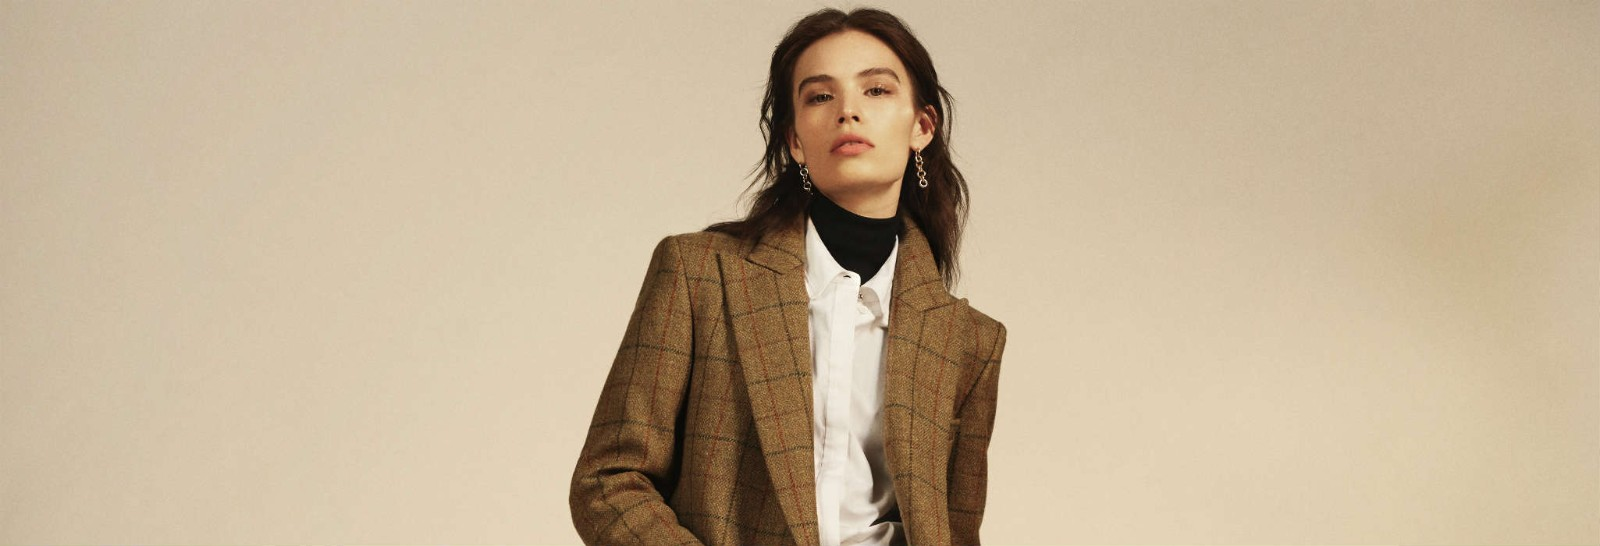 Sharp looks - tailoring trends for spring/summer 2018